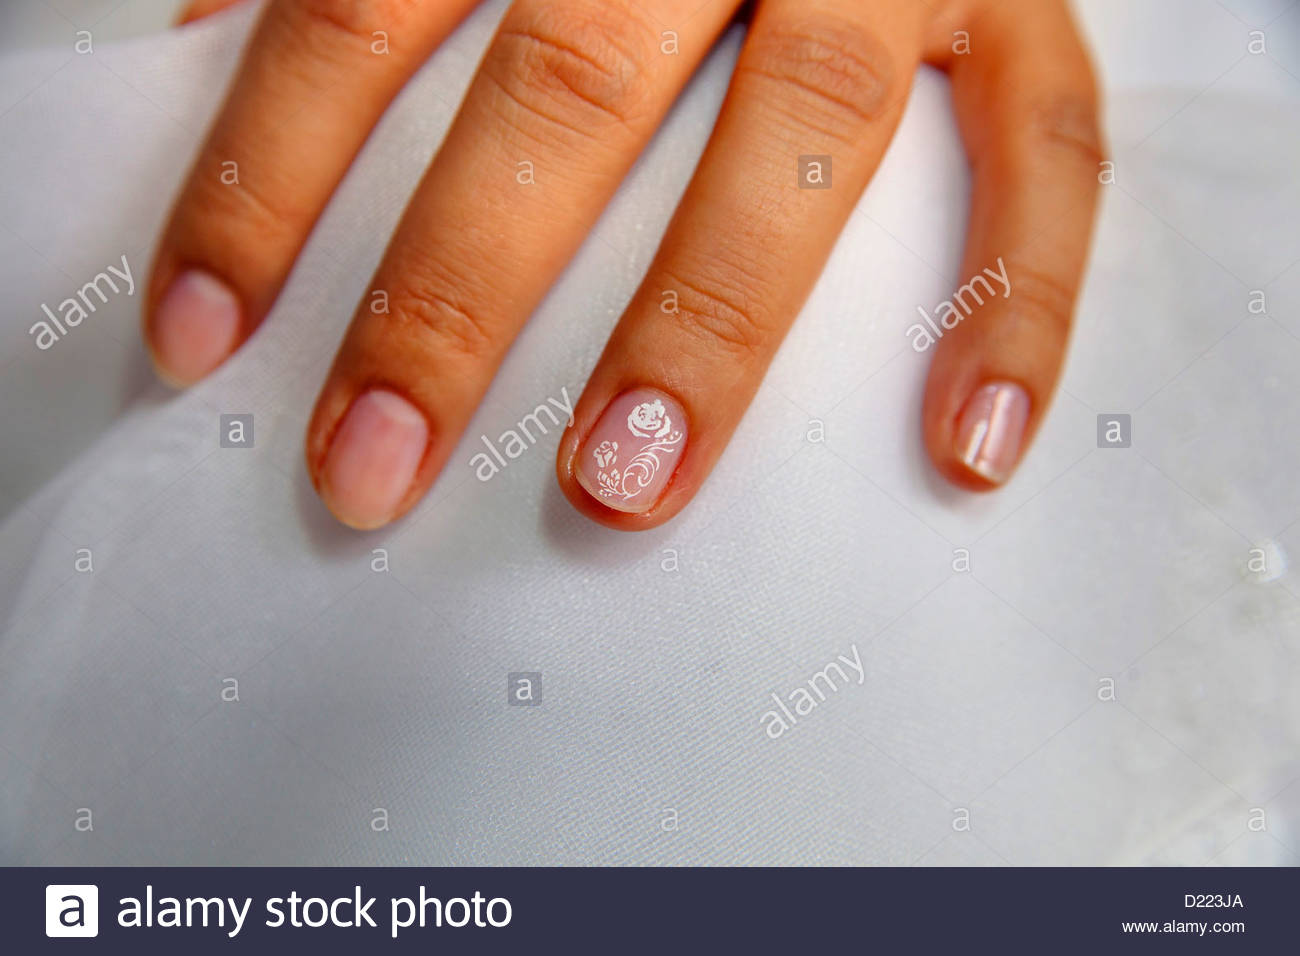 Fingernail design - Stock Image